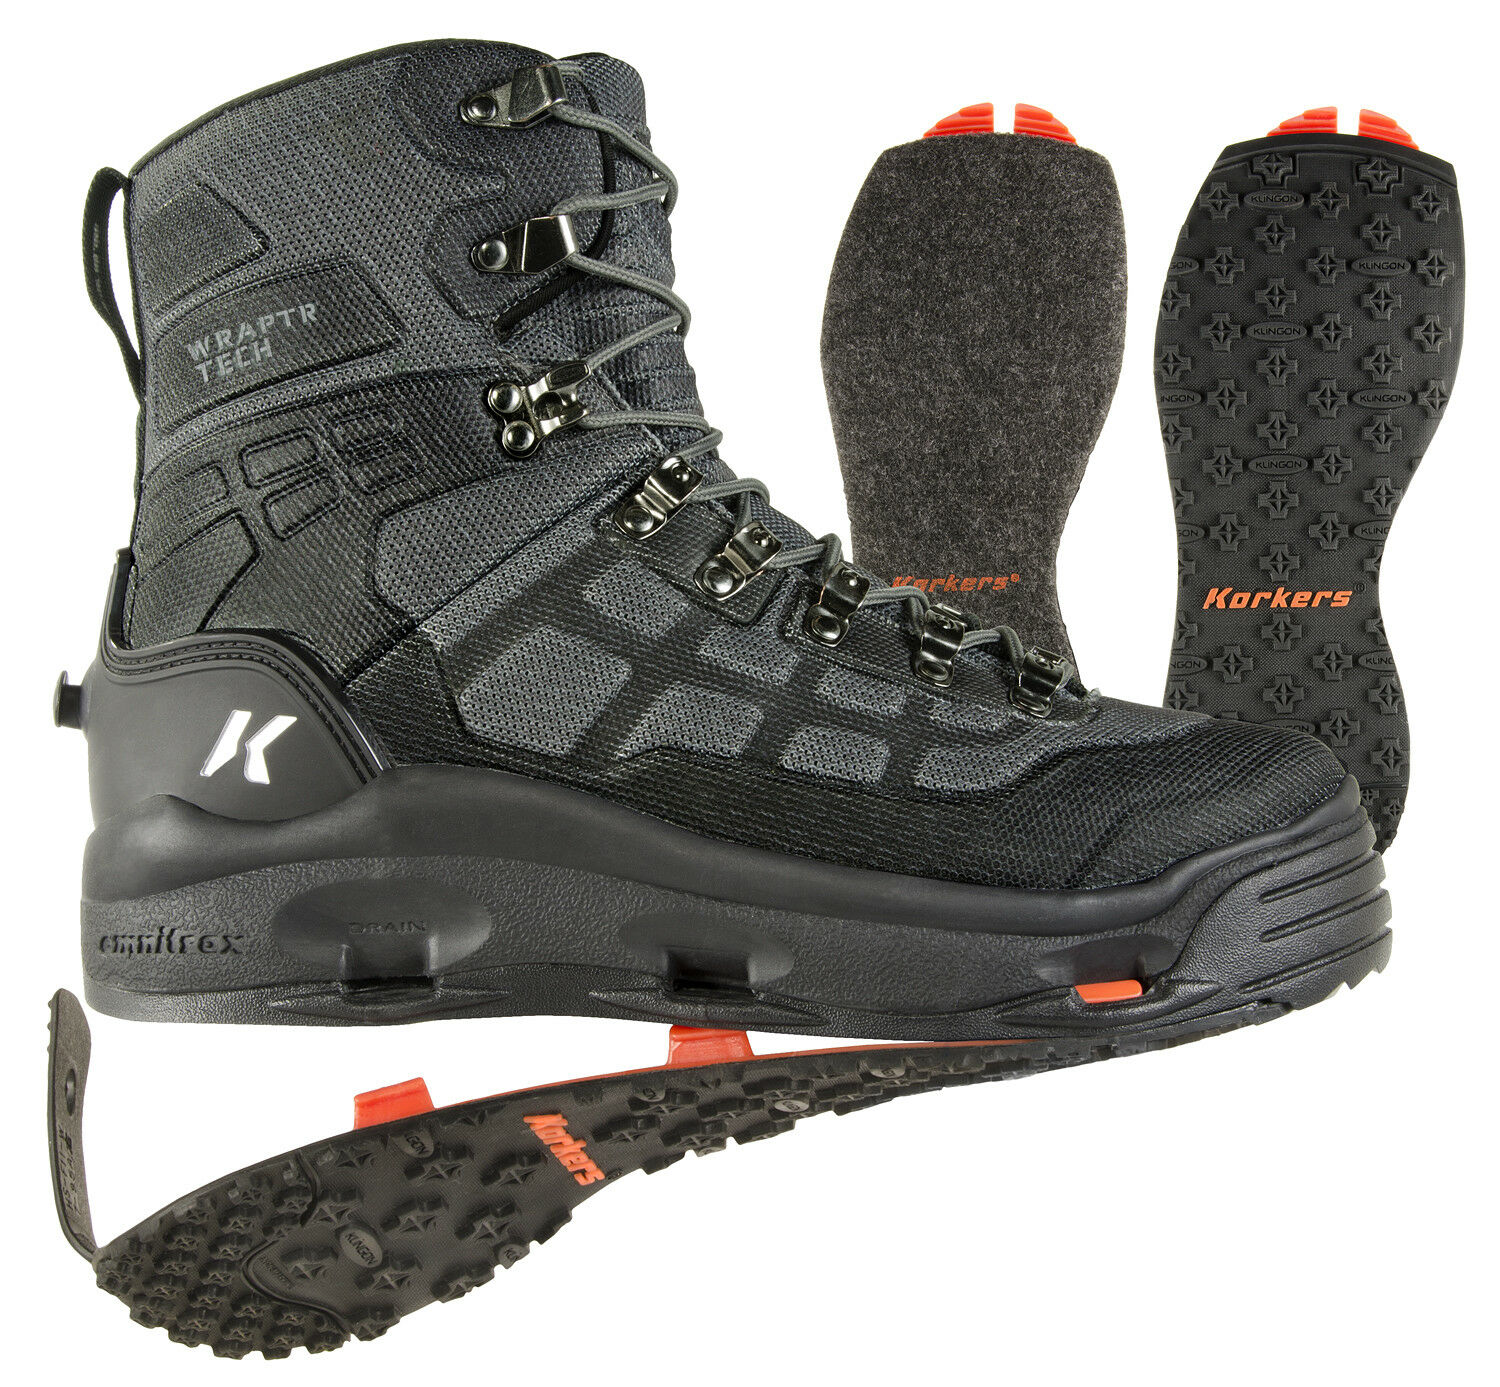 Korkers Wraptr Wading boots w Felt and Kling-On rubber soles - Size 8